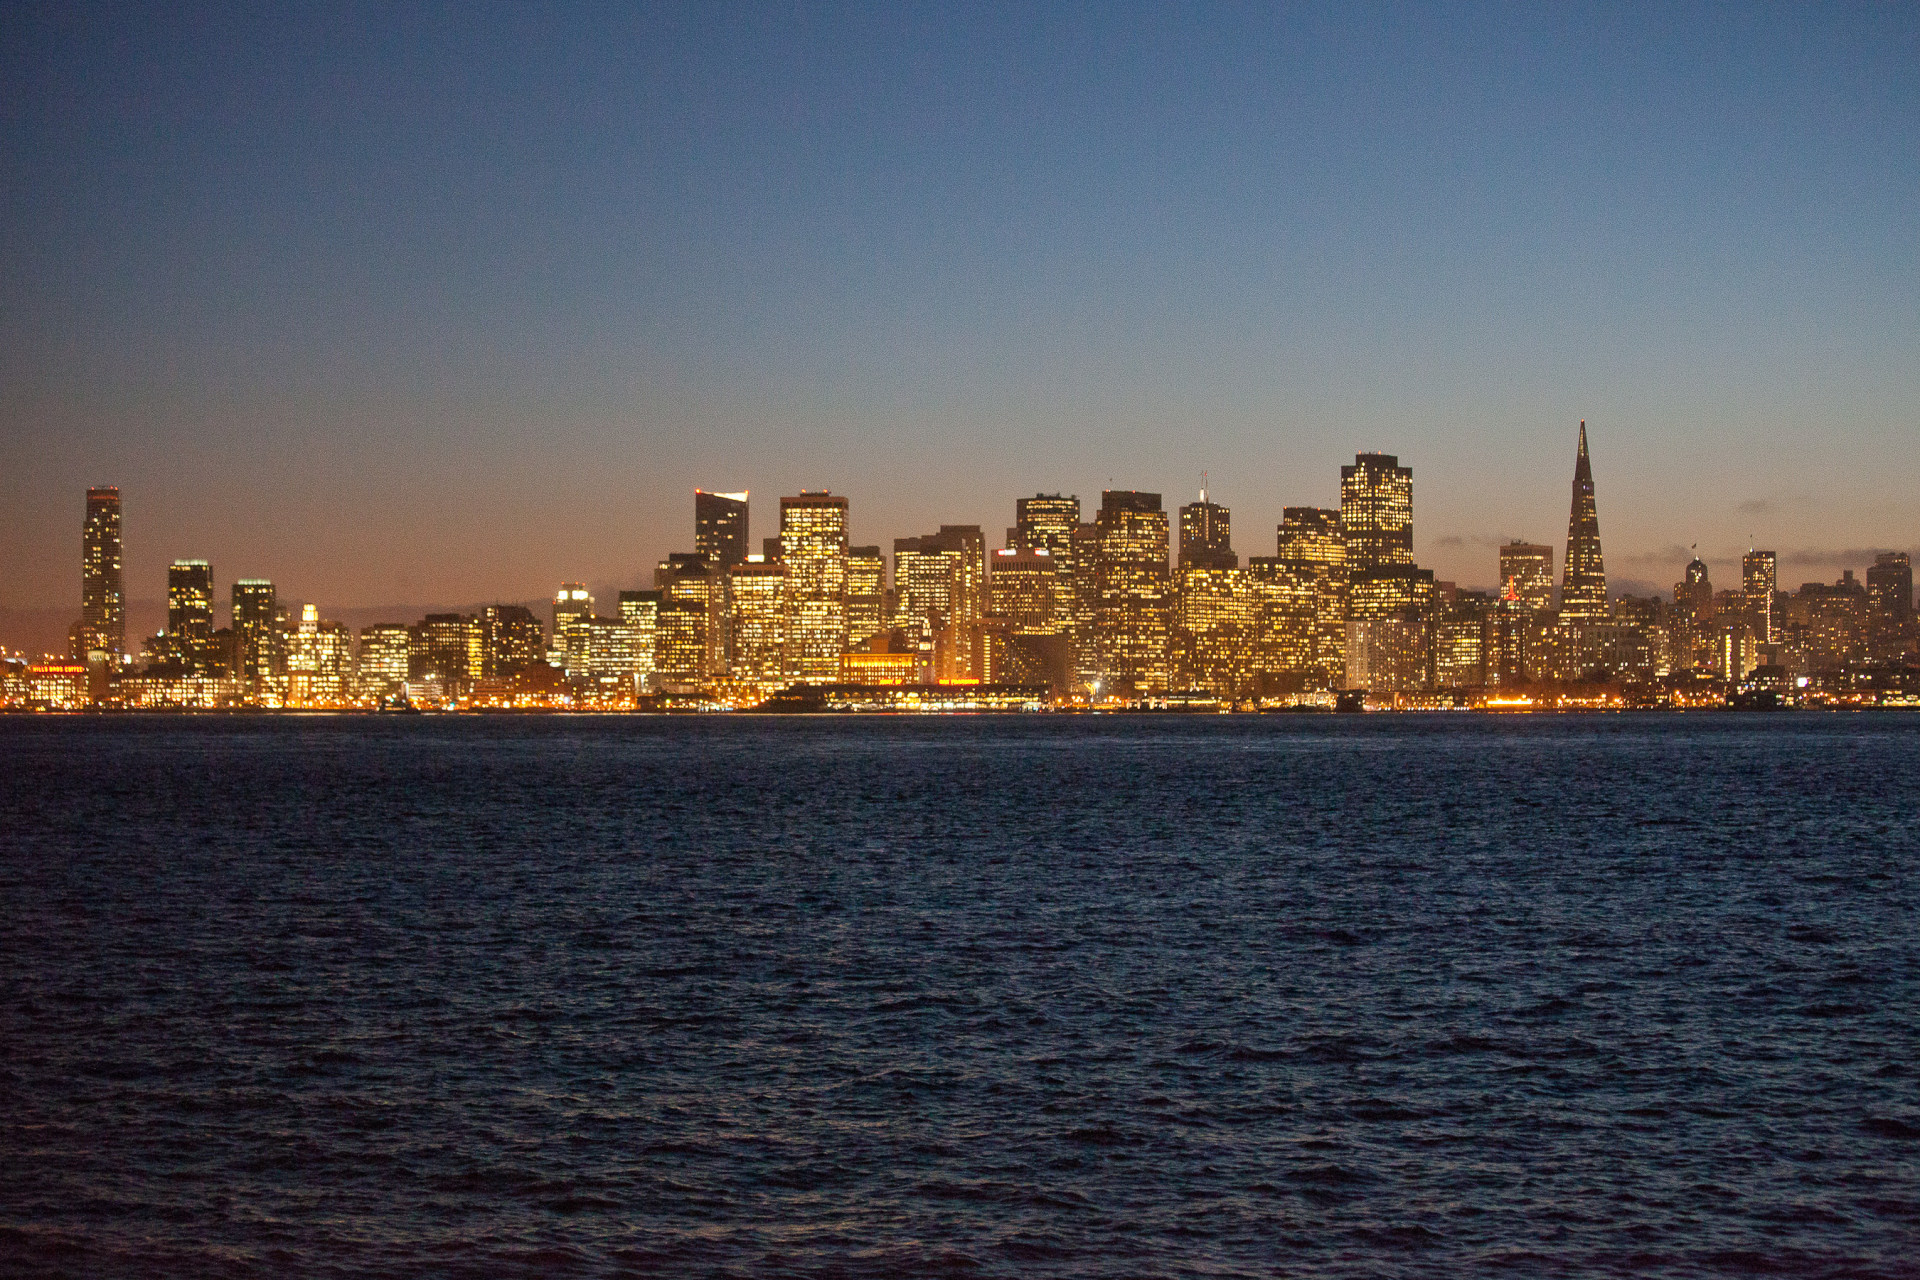 S.F. Judge Allows Challenge to Waterfront Height Limits to Proceed